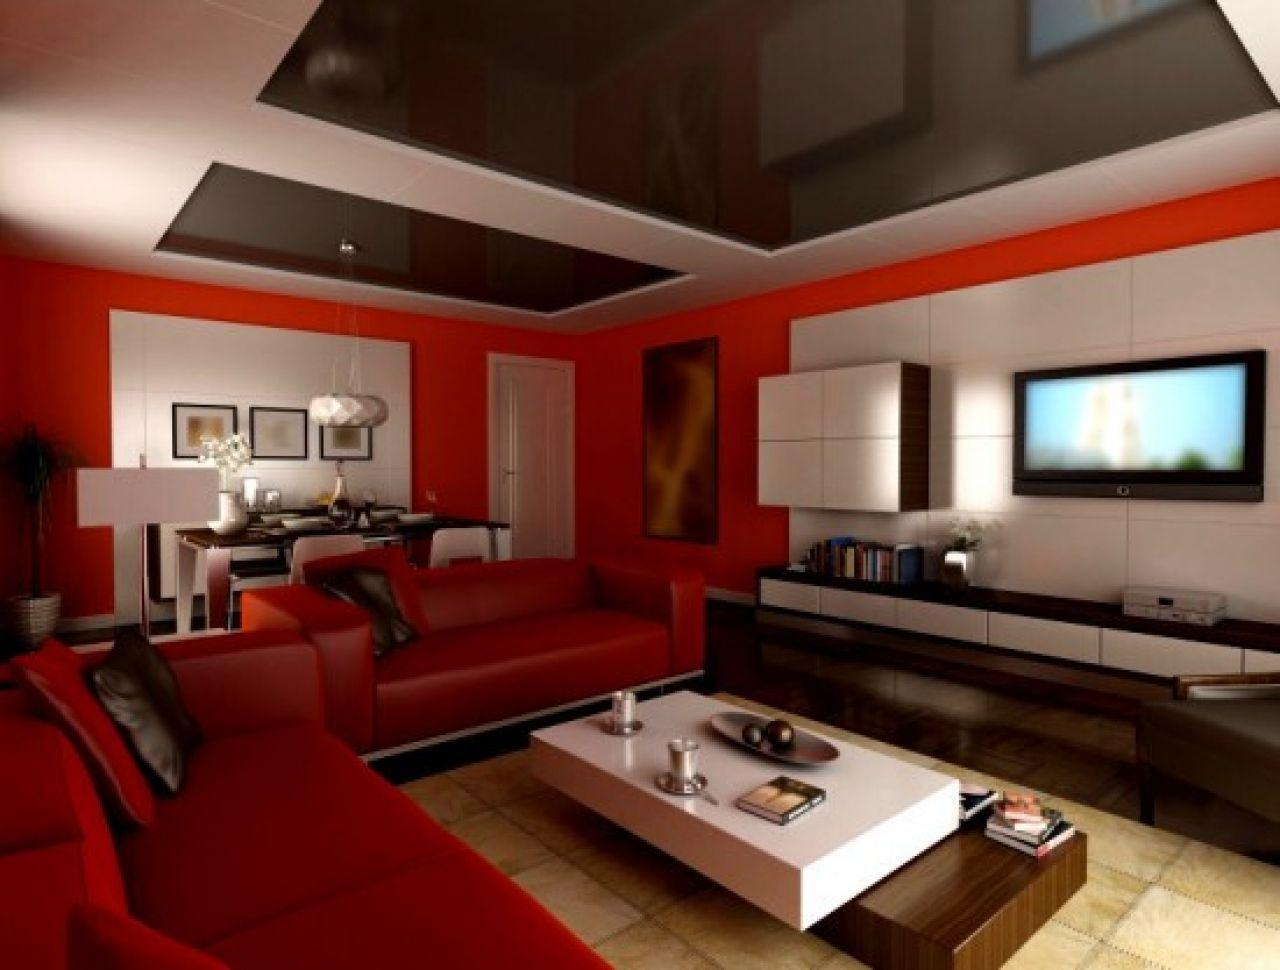 Paint Design For Living Room Walls Modern Living Room Painting Ideas With Leather Red Leather Sofa